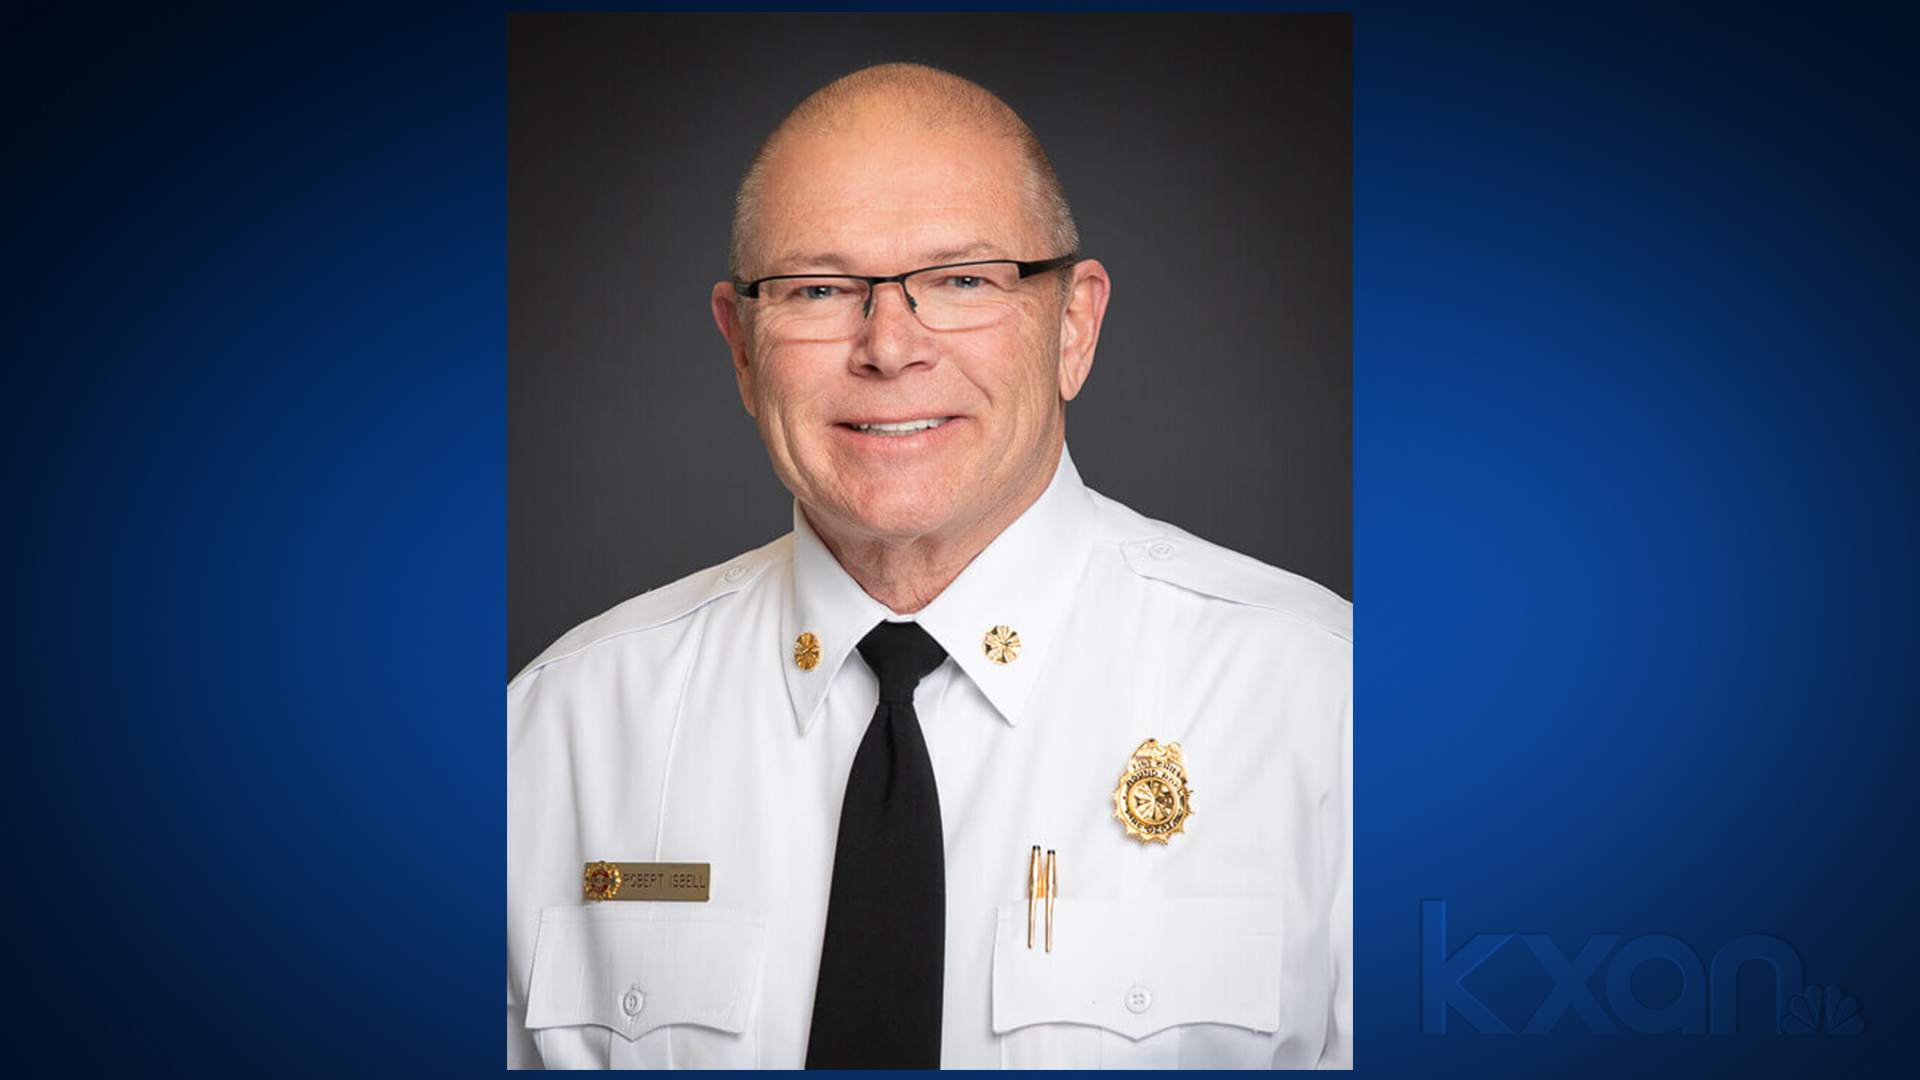 Round Rock Fire Chief Robert Isbell announced his last day with the department will be Oct. 1. (City of Round Rock photo)